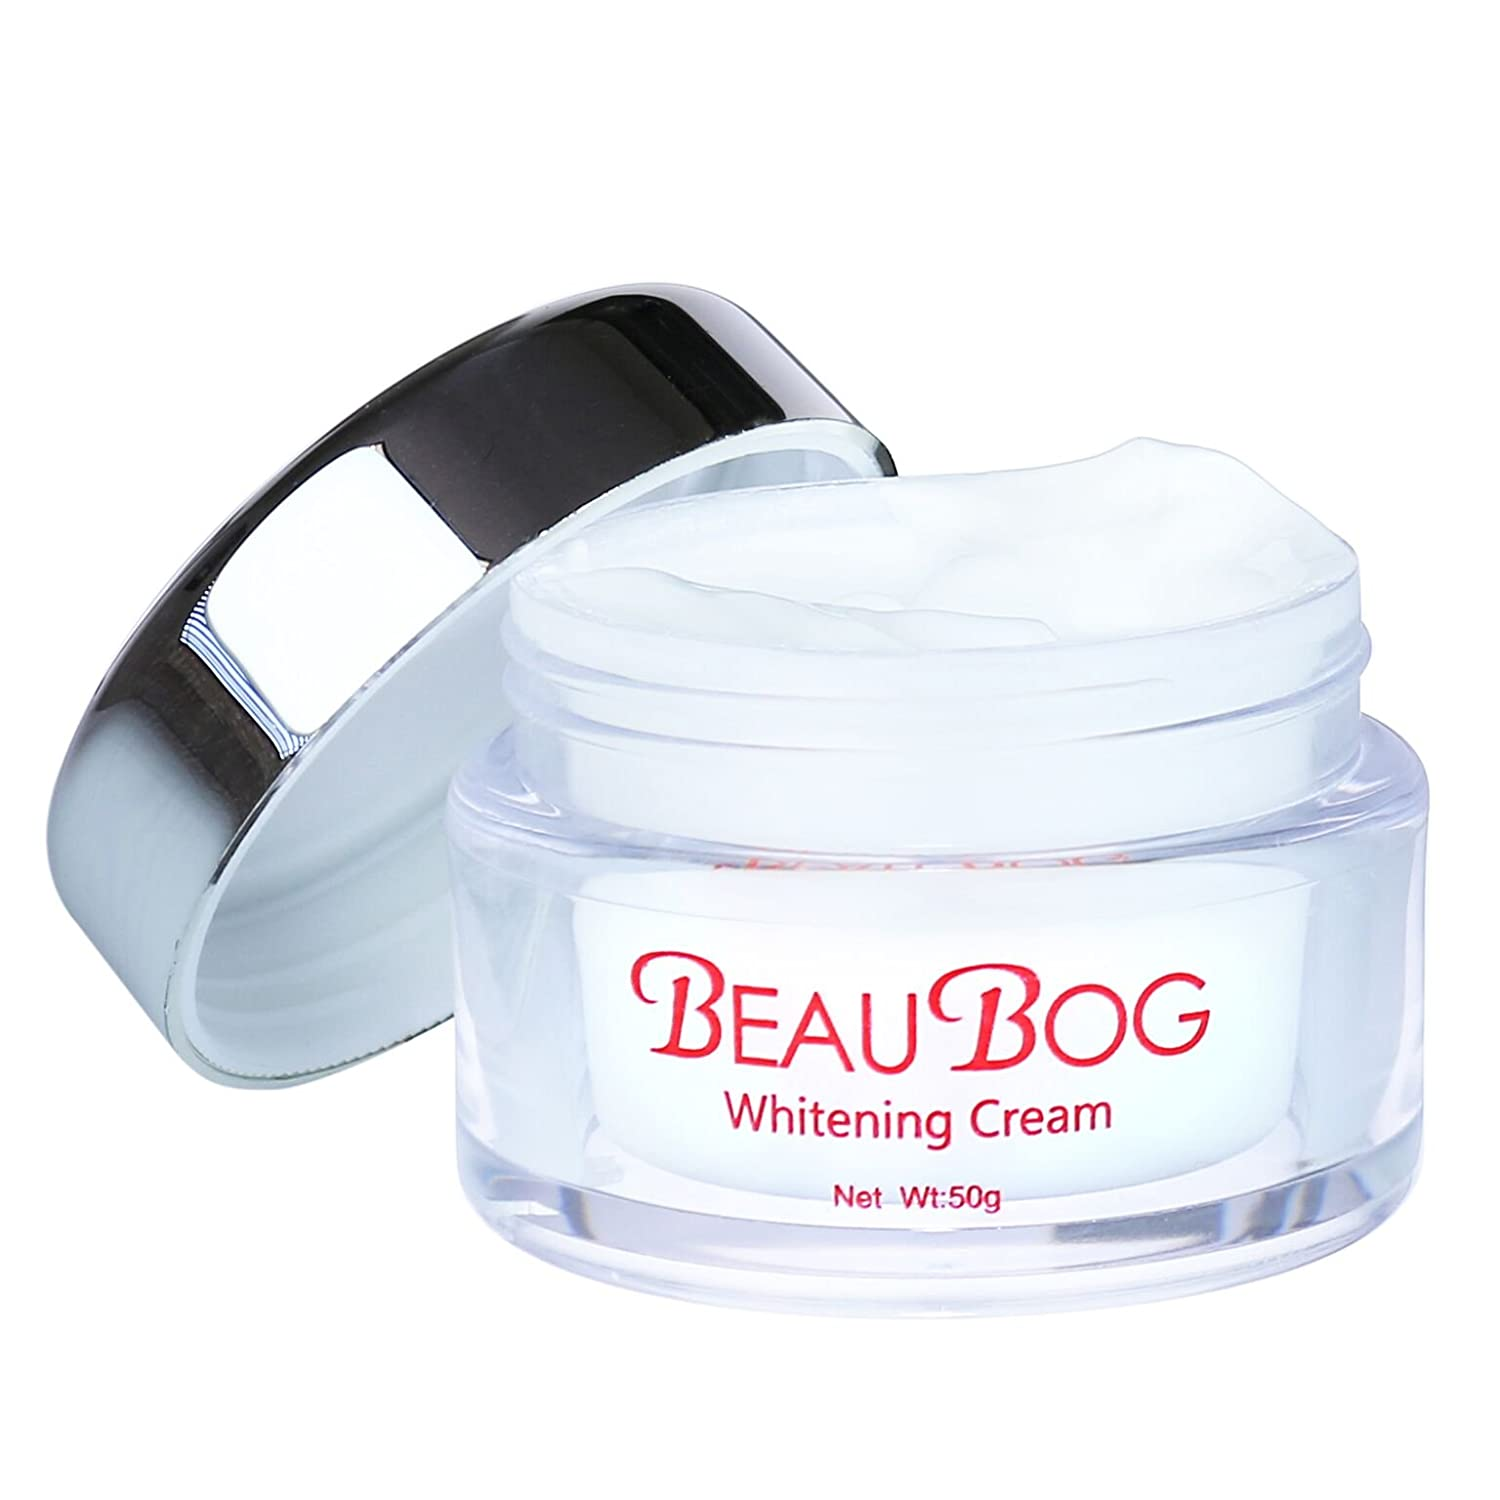 BeauBog(TM) Natural Skin Whitening Cream (Day & Night) Professional Face, Body, Underarm Anti-Aging Treatment, Dark Spot Corrector | Reduce Blemishes, Restore Radiance